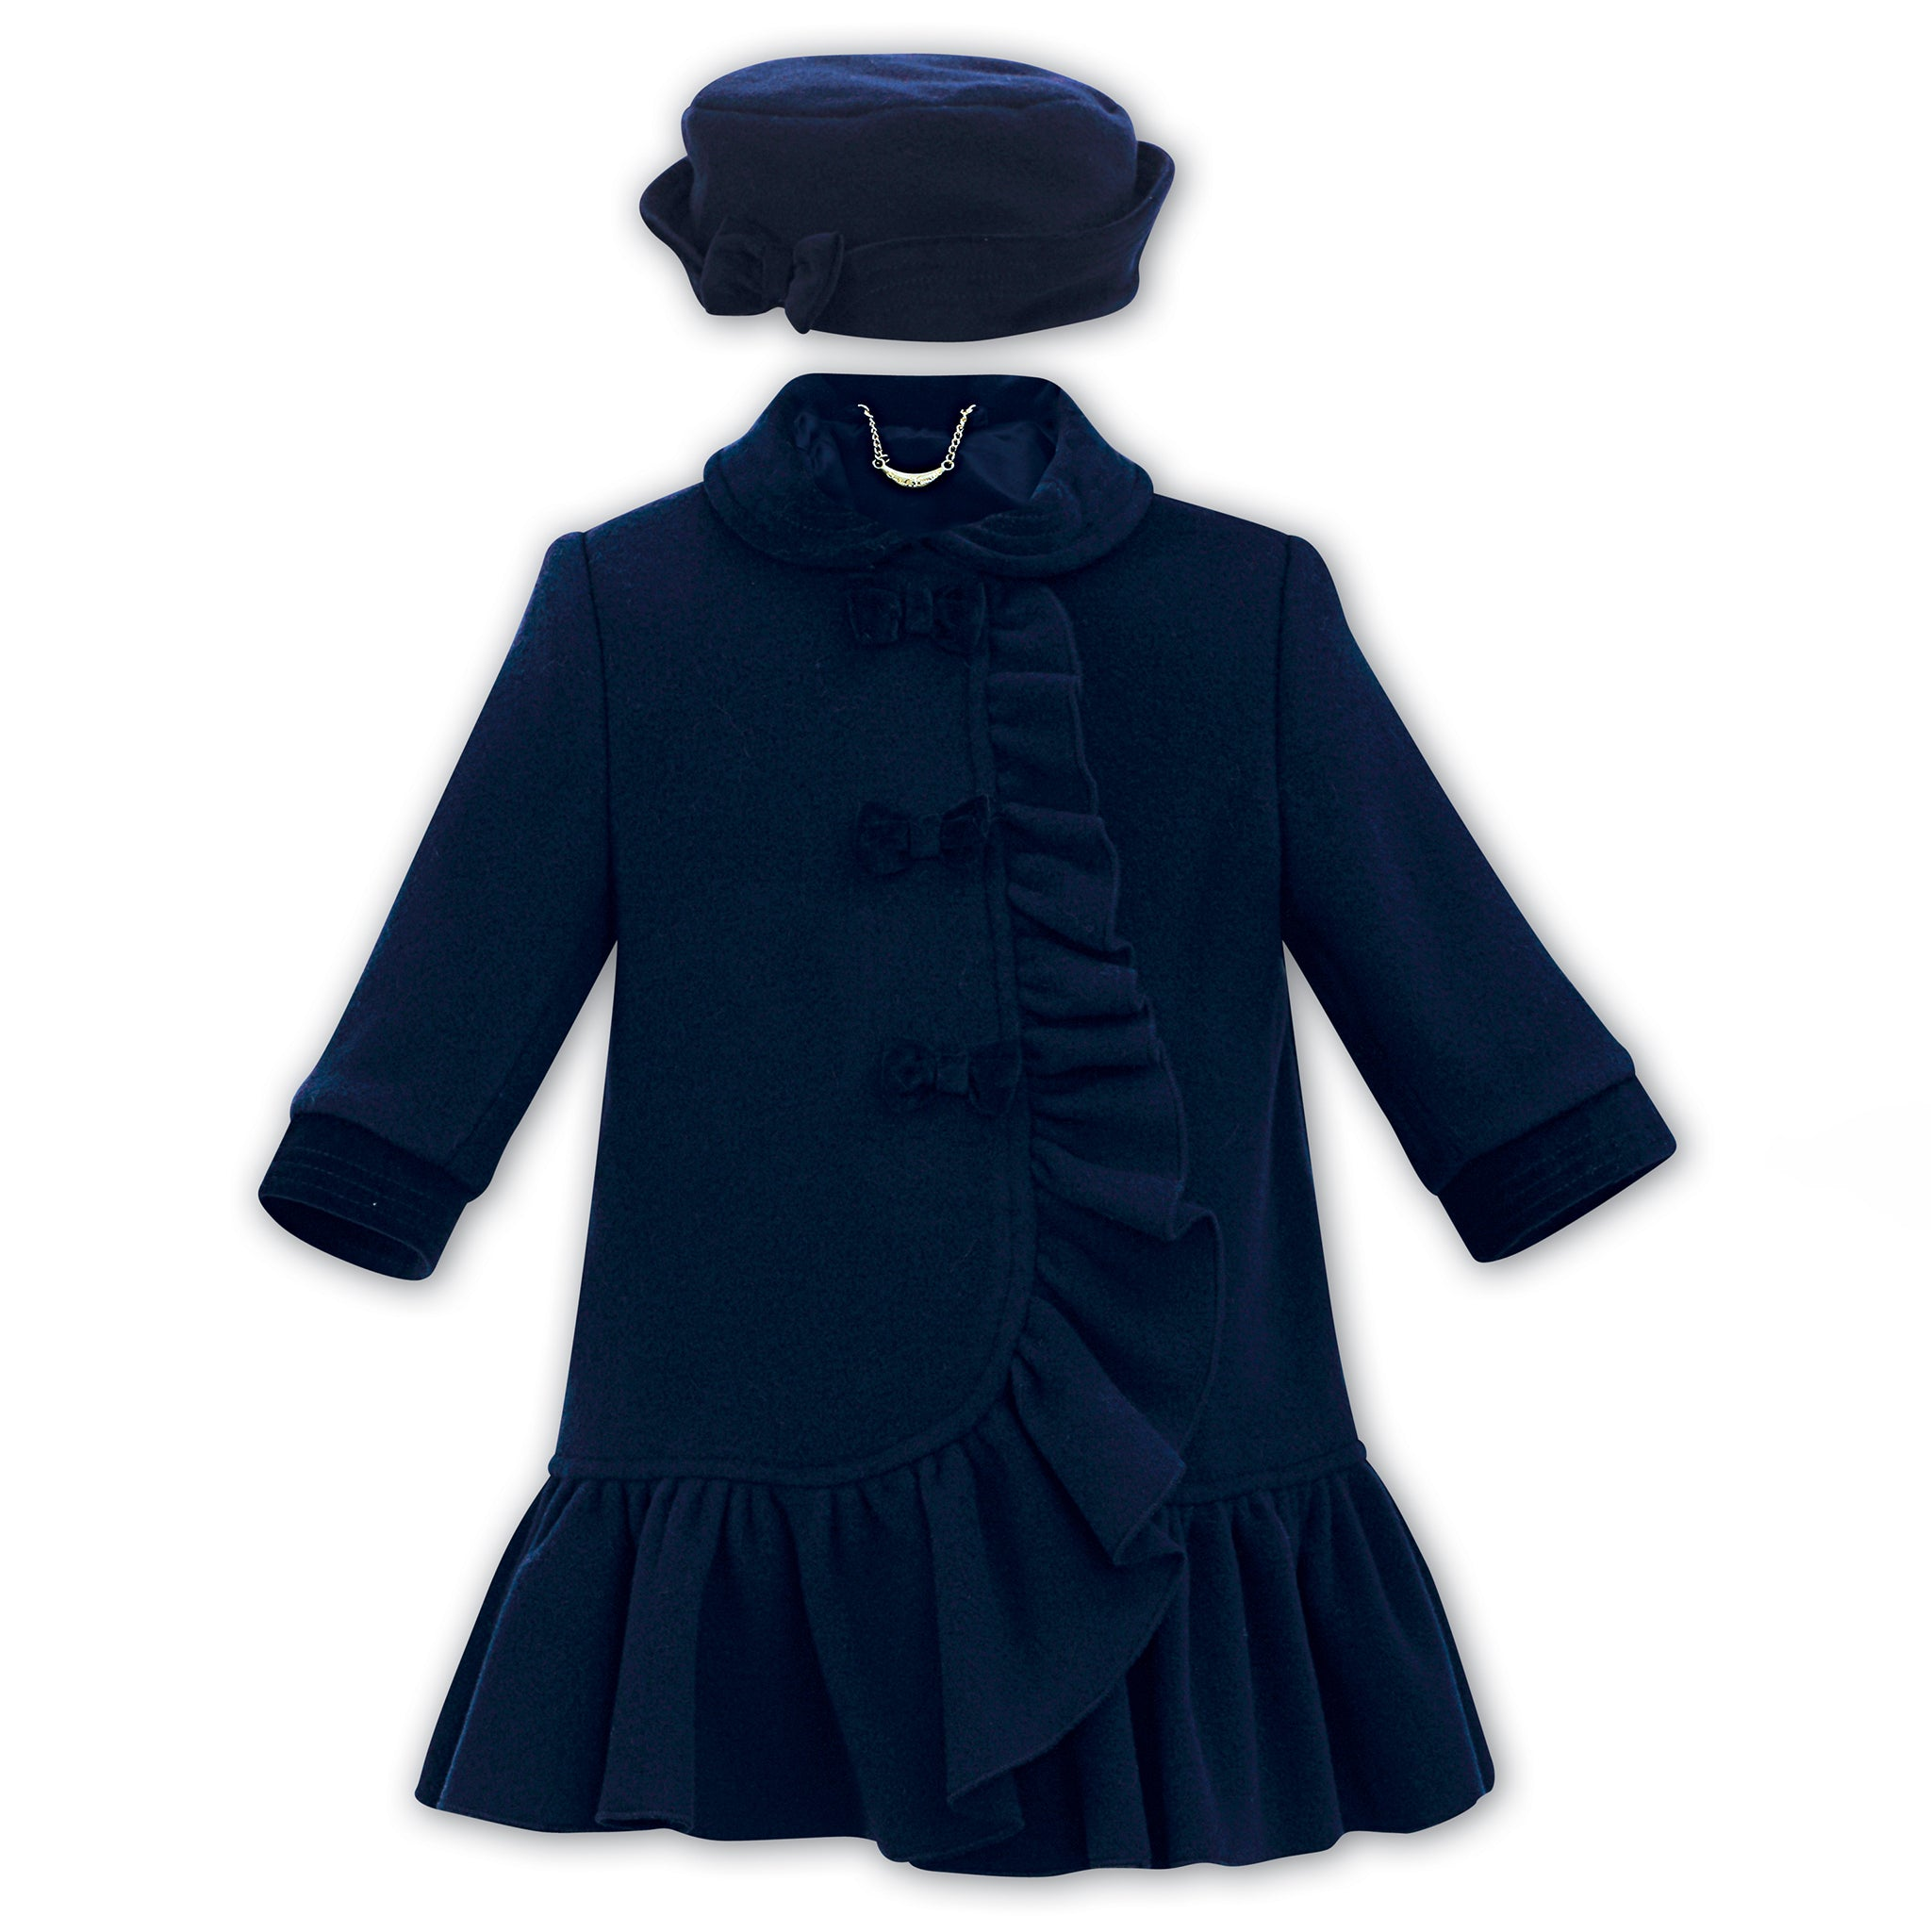 d26d9a1d5f23 Sarah Louise Navy Wool Coat   Hat Set